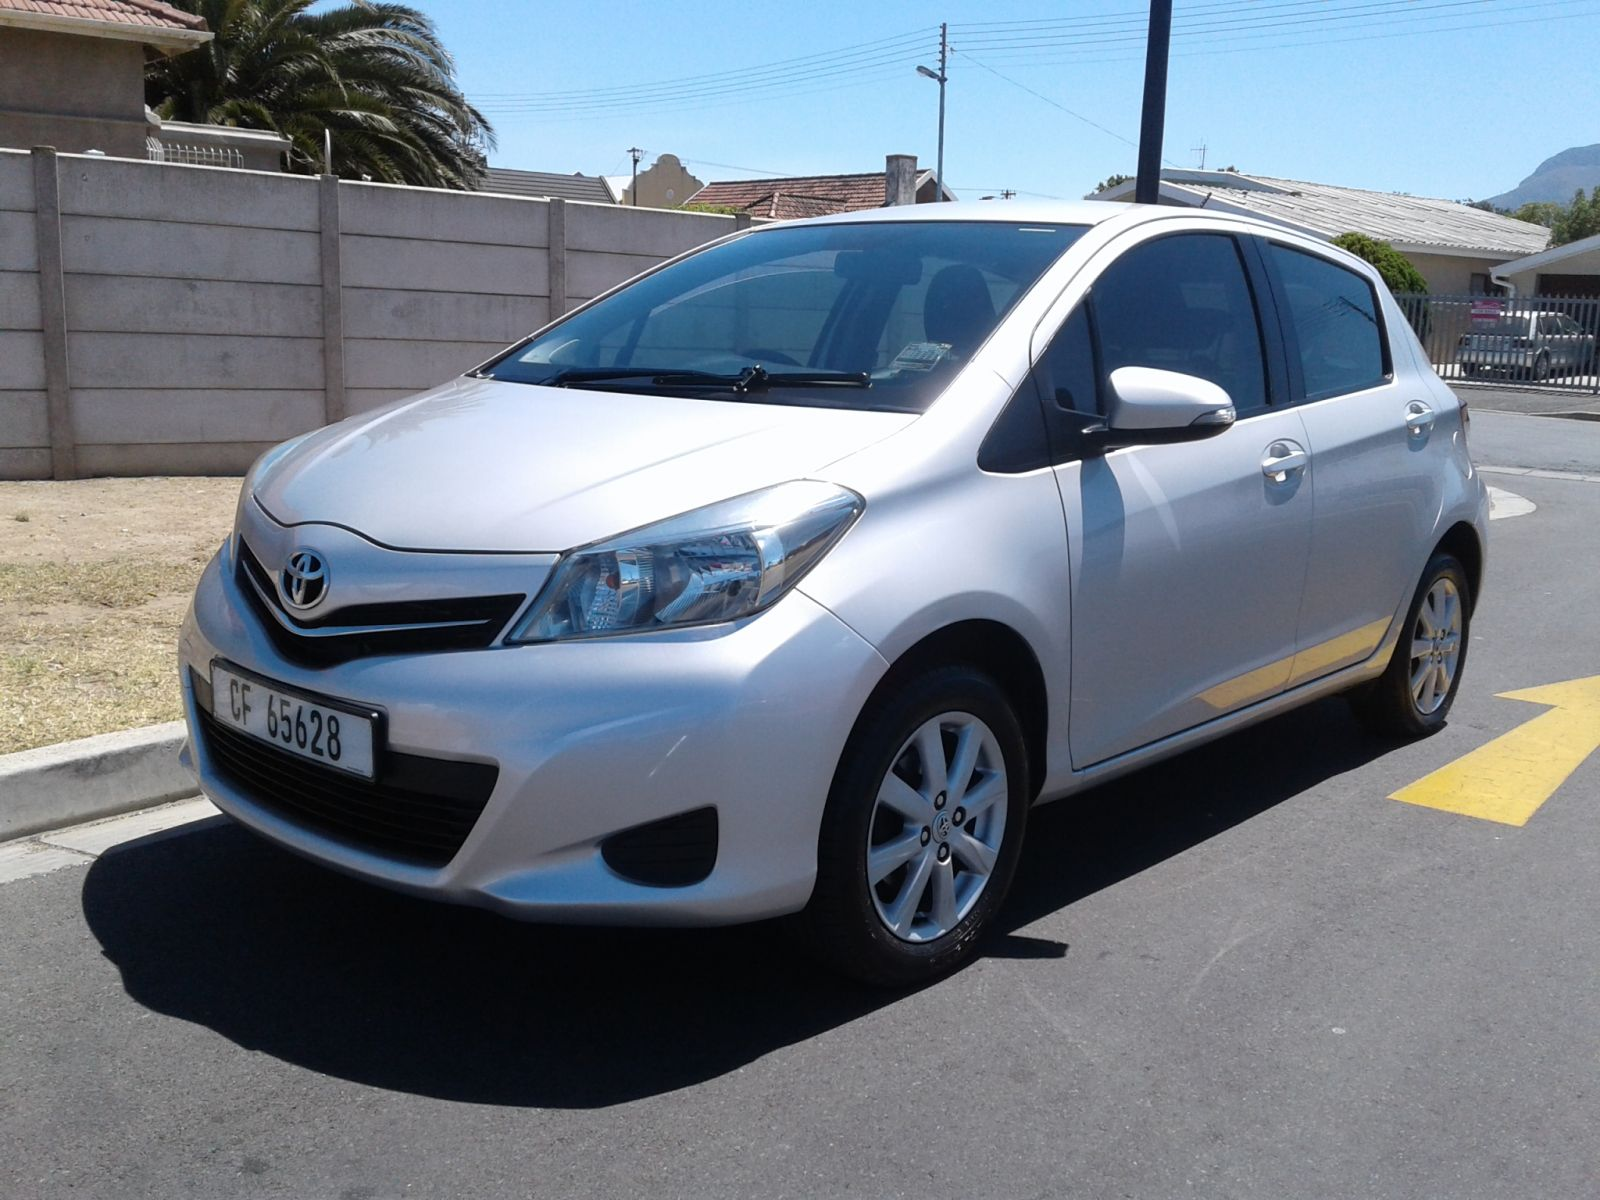 yaris yaris 1.0 xs 5dr specifications